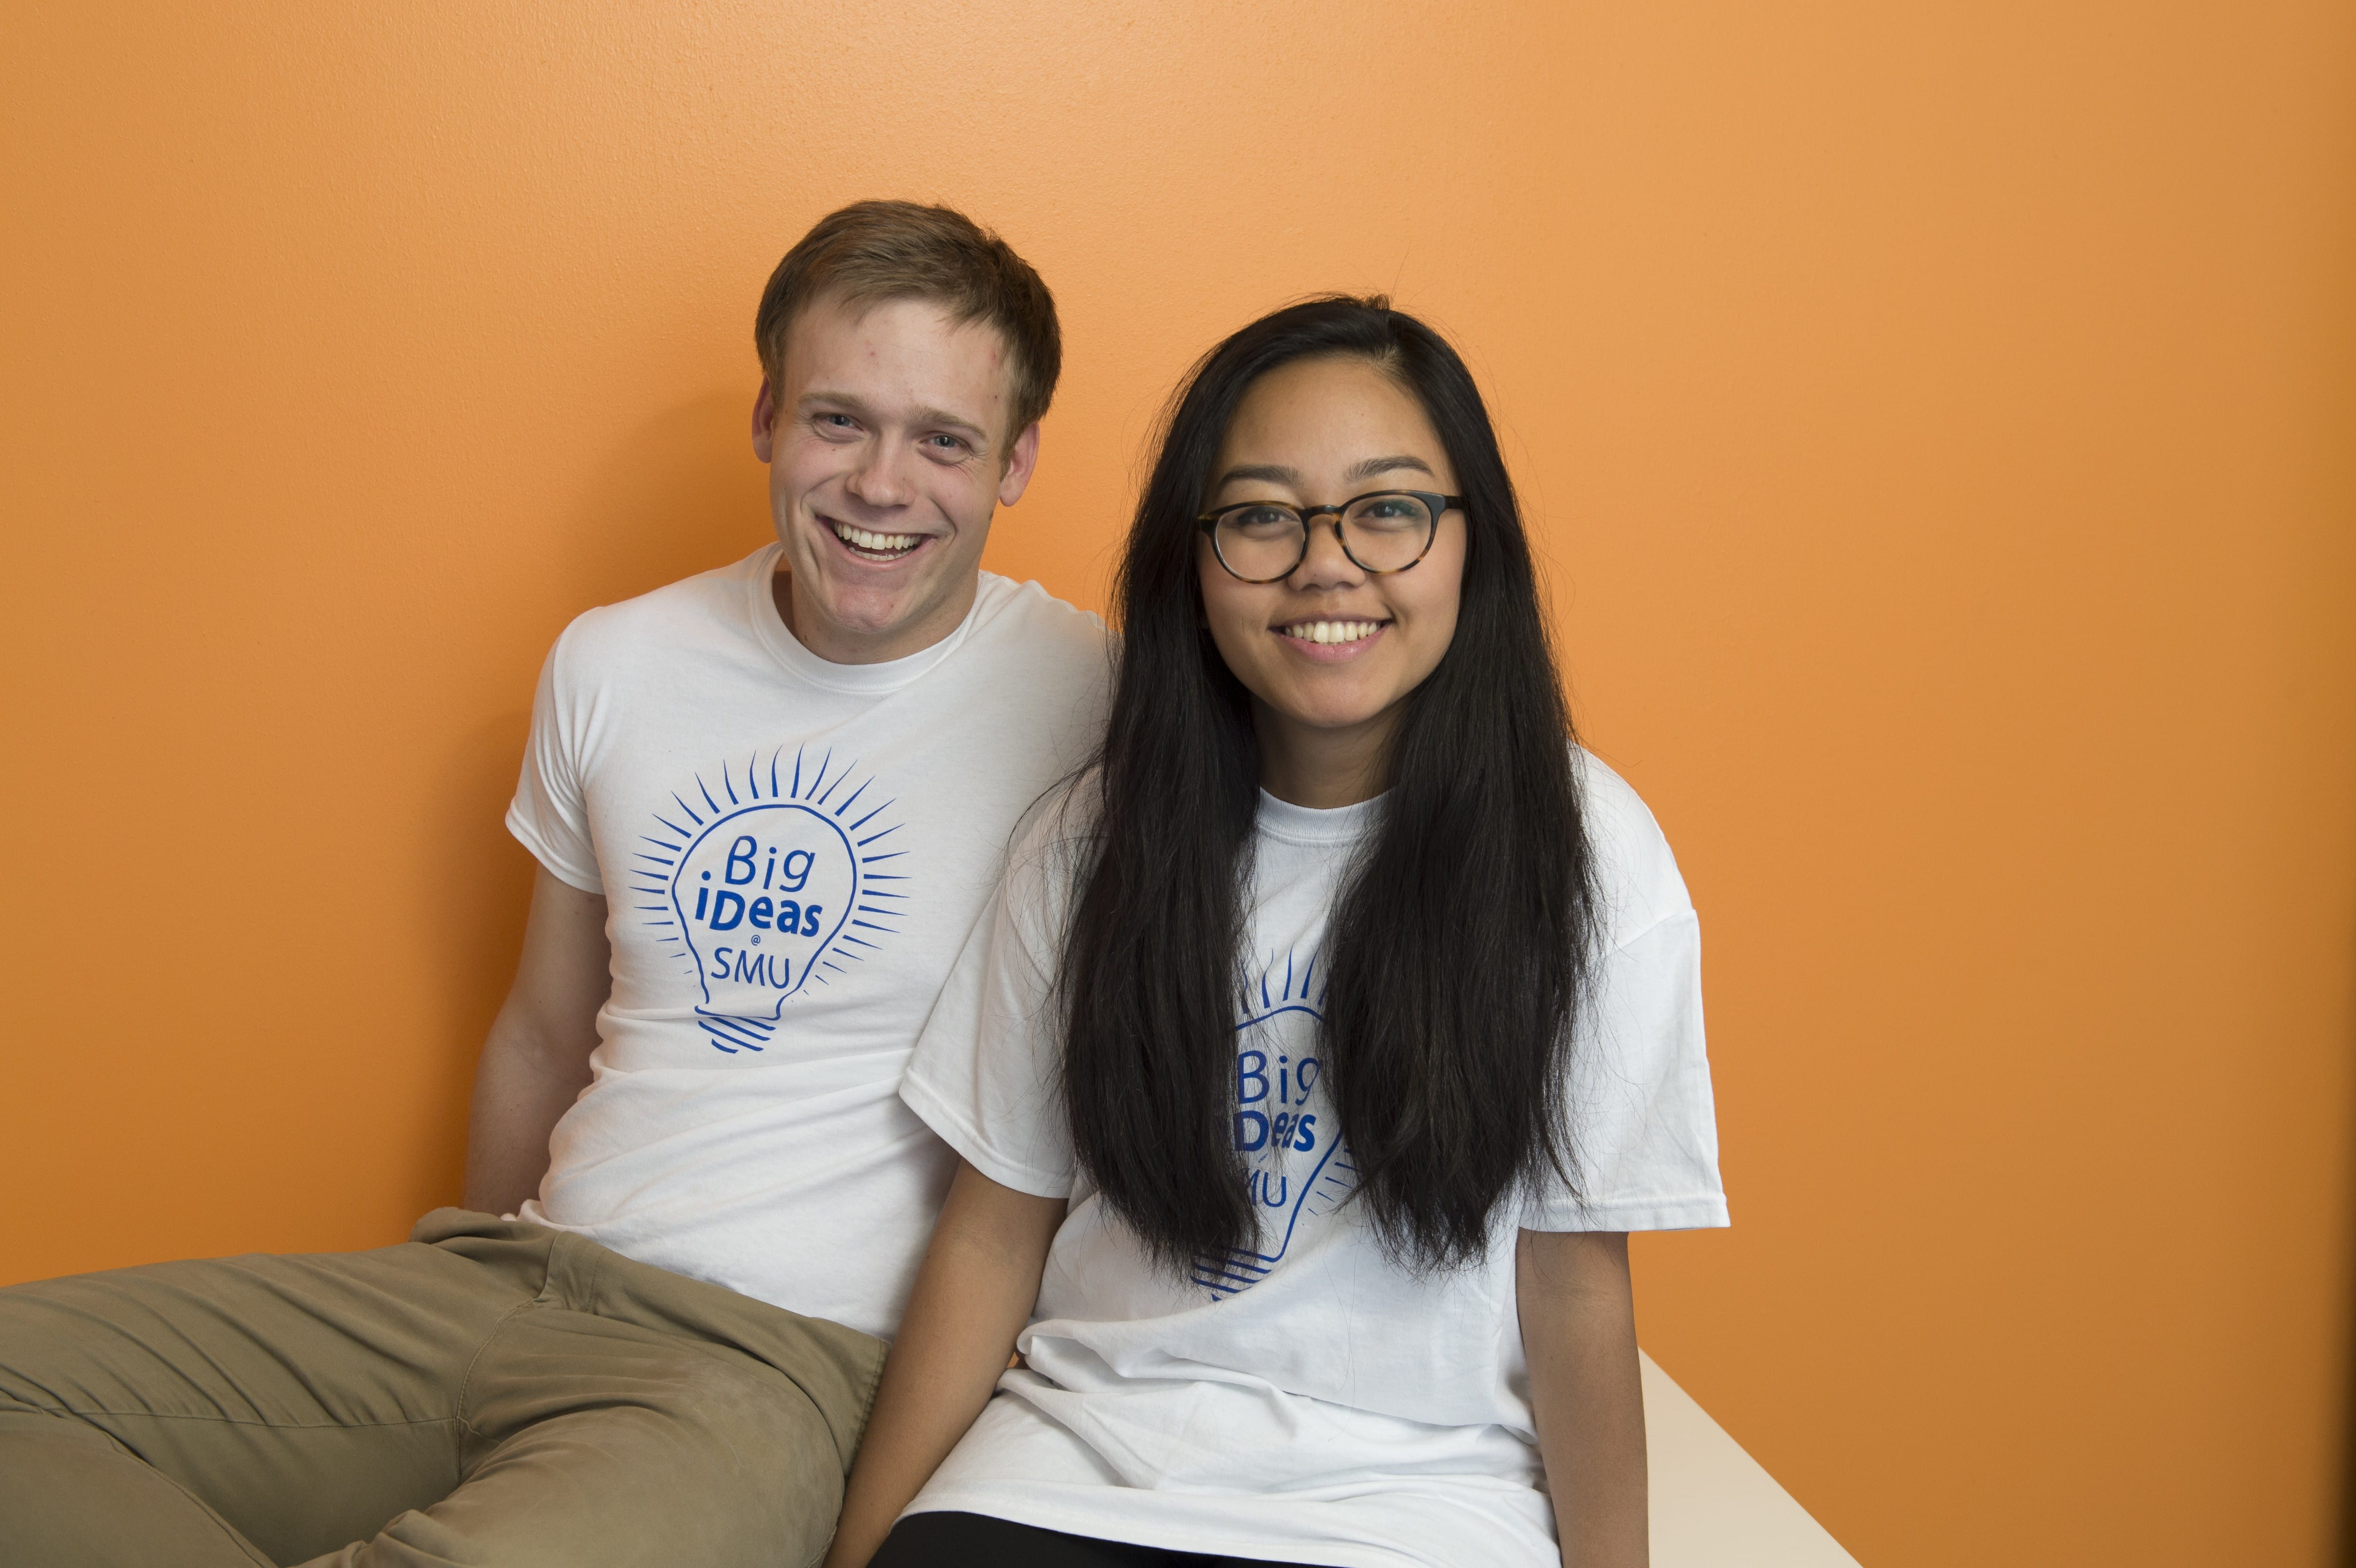 SMU students invent a new kind of Sidekick